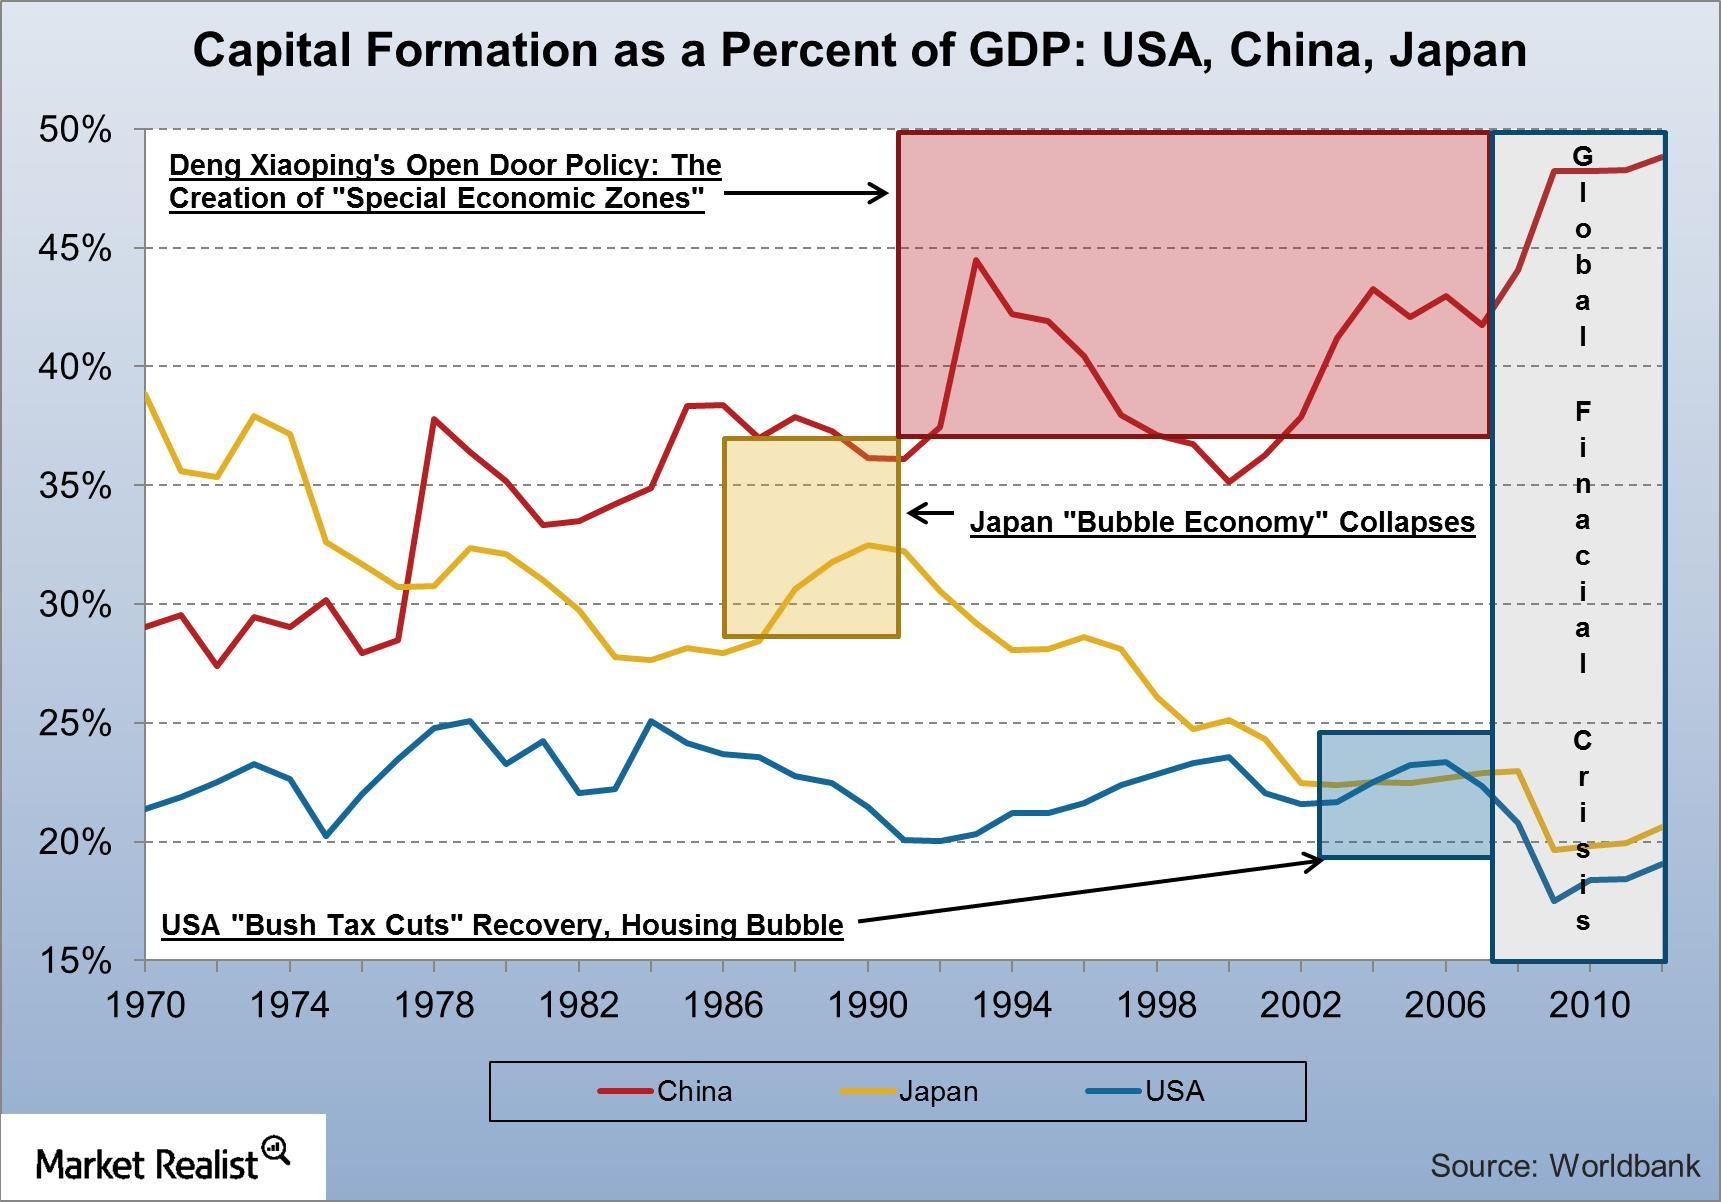 uploads///Capital Formation as a Percent of GDP USA China Japan